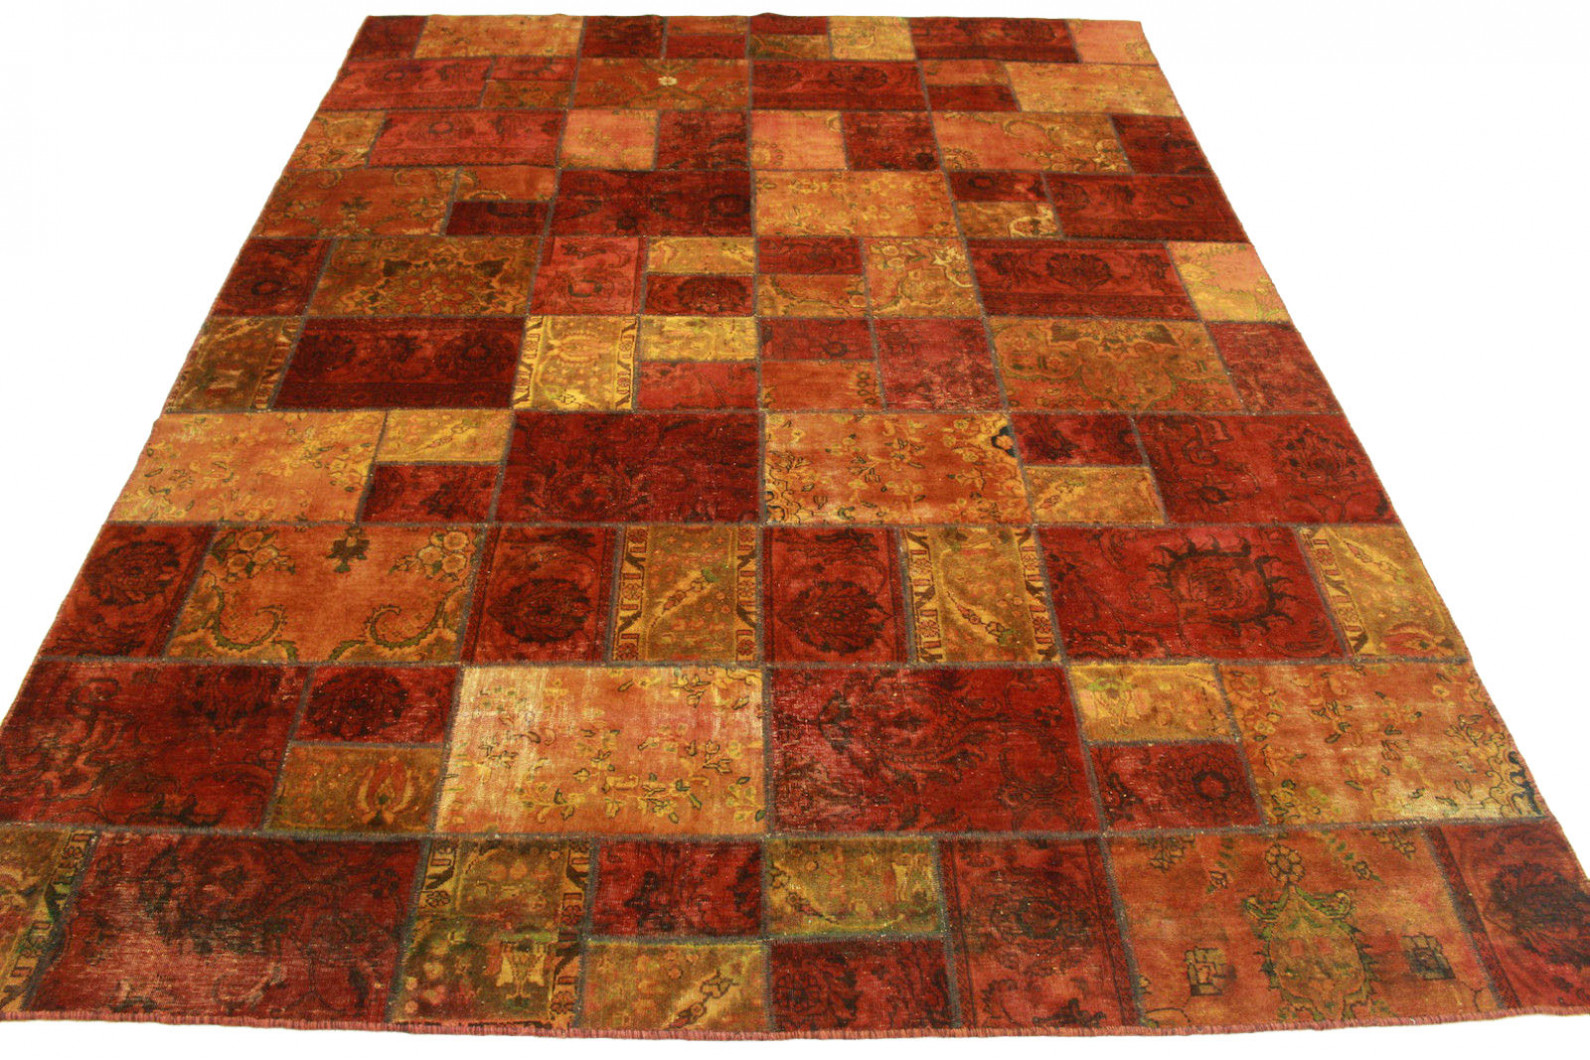 Teppich Orange Patchwork Teppich Orange Braun In 400x300cm 1001 1840